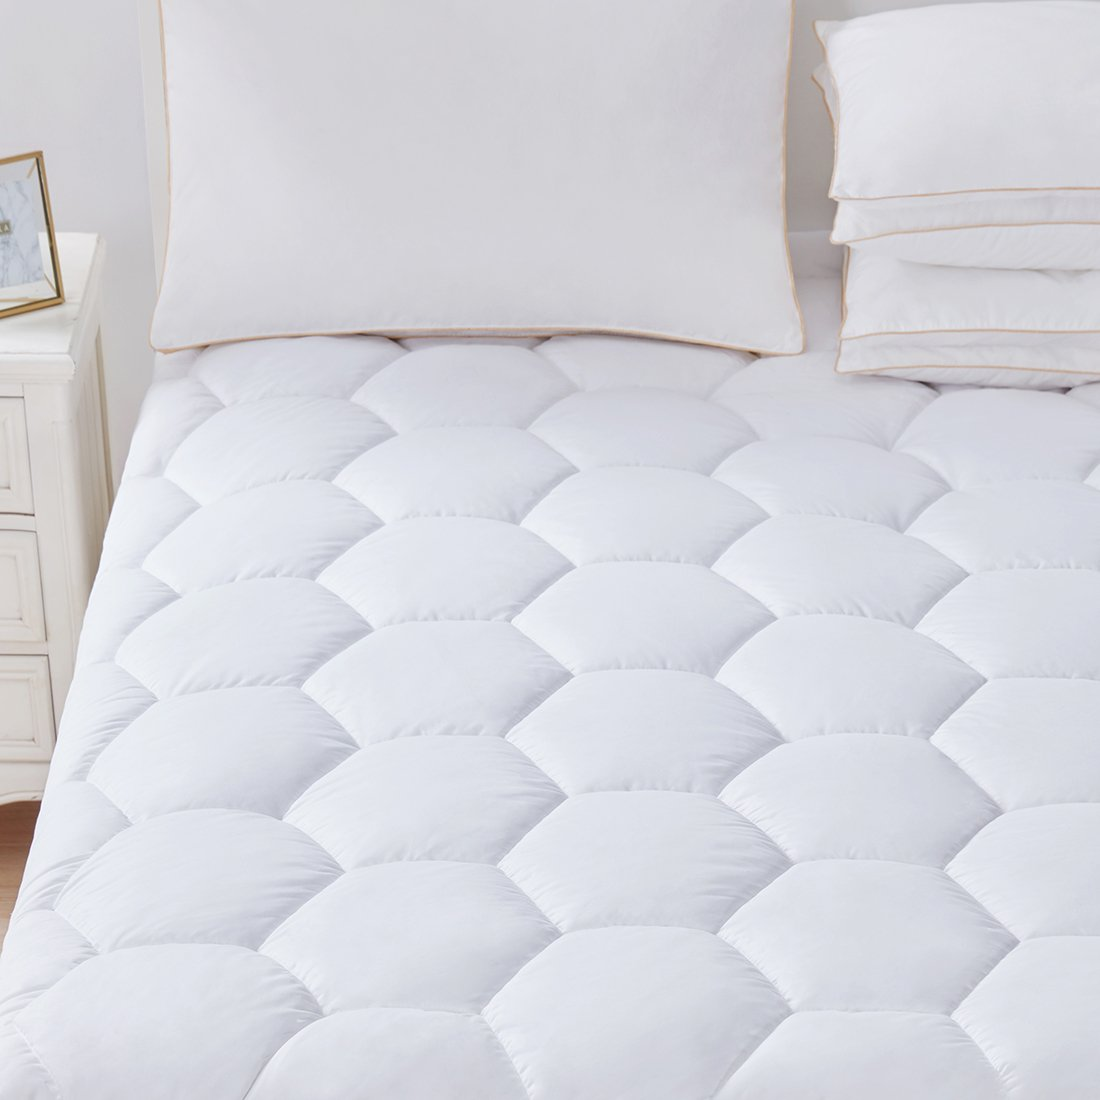 Mattress Pad Cover Queen Size- Hypoallergenic Quilted Fitted Down Alternative Filled Pillowtop Luxury Mattress Topper,Cooling,Breathable and Soft with Deep Pocket for Hotel and Home